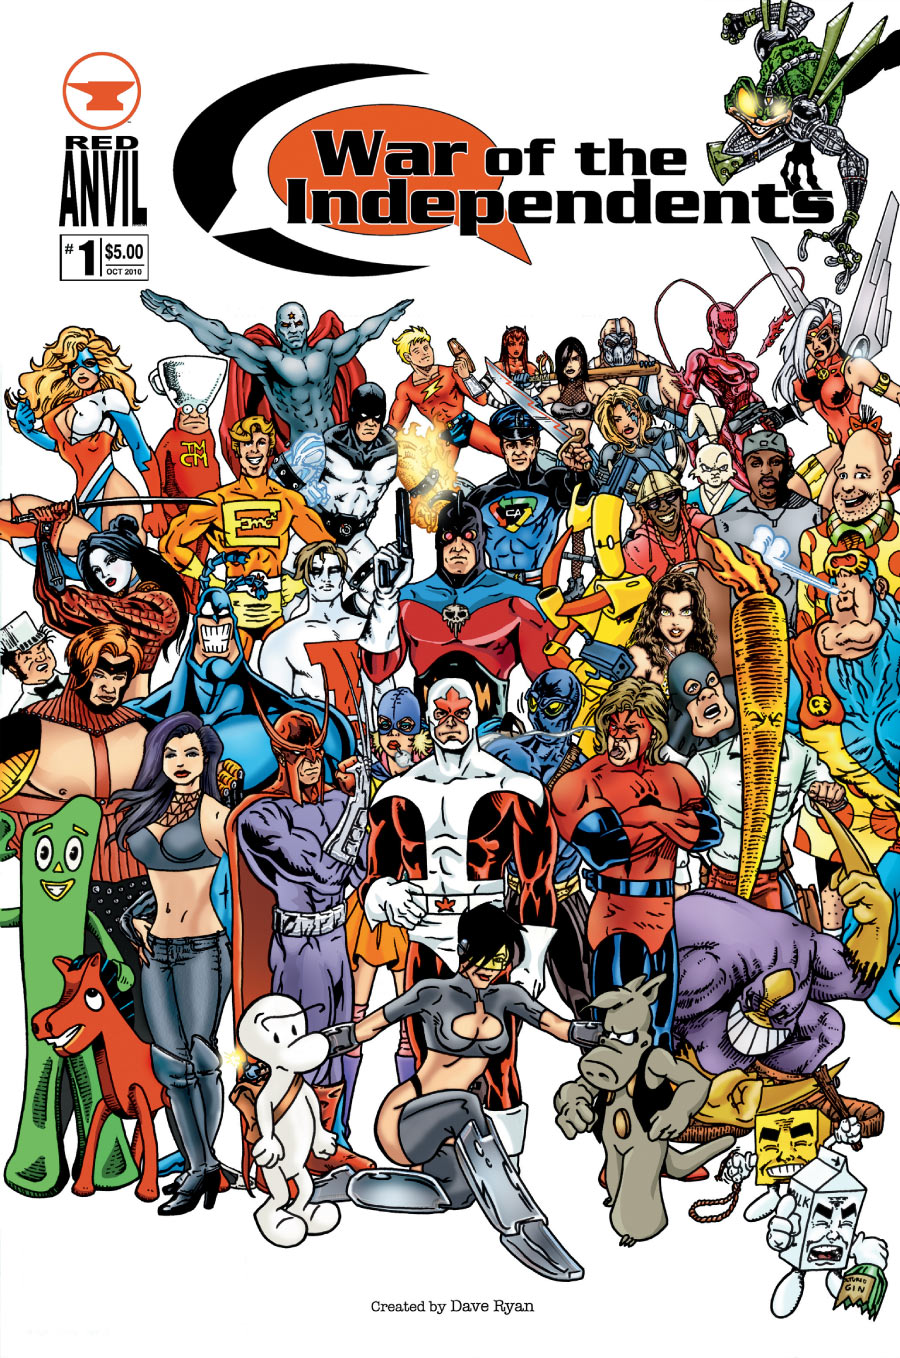 independent comic books A web comic section may be added in the future but for now this wiki will focus on print comic books and graphic novels (but does include print editions of web comics) the comic book does not have to be about a super hero as this wiki covers all independent canadian comic books and graphic novels.